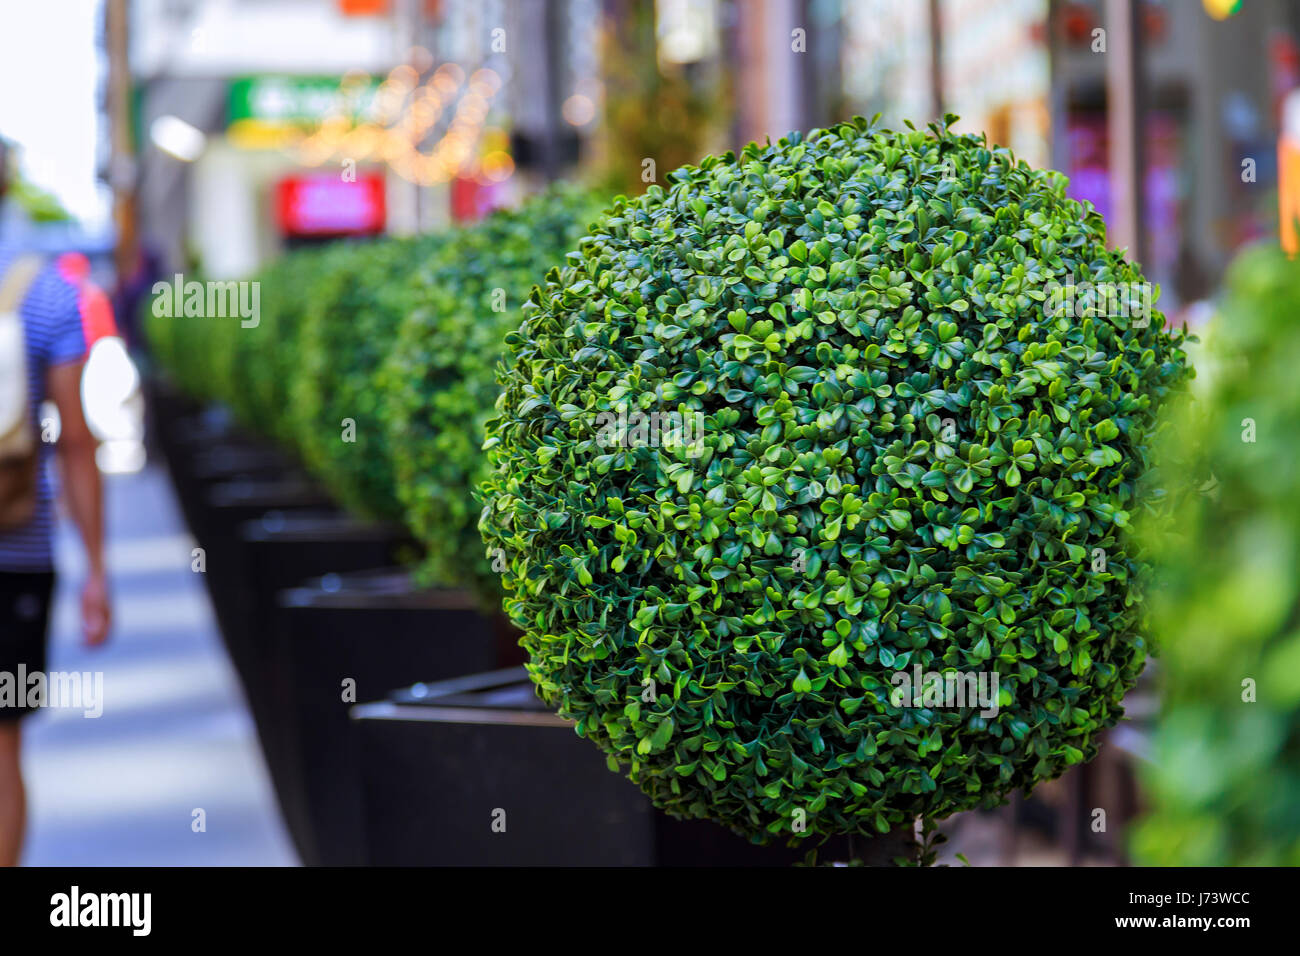 The exterior of the hotel and restaurant, with flowering small trees - Stock Image